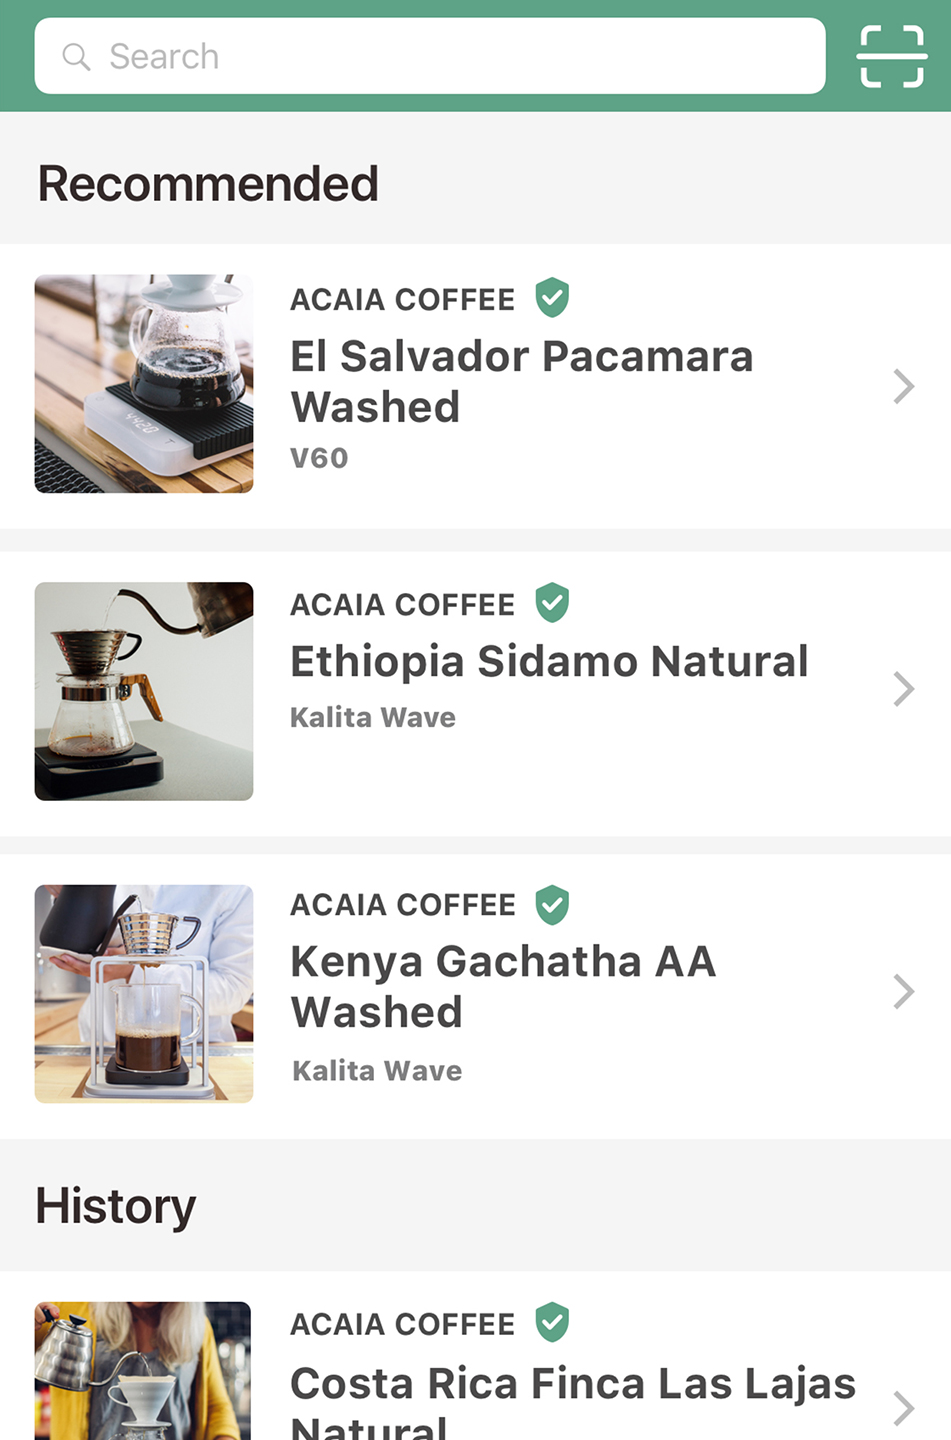 acaia coffee scale brewmaster app brewing